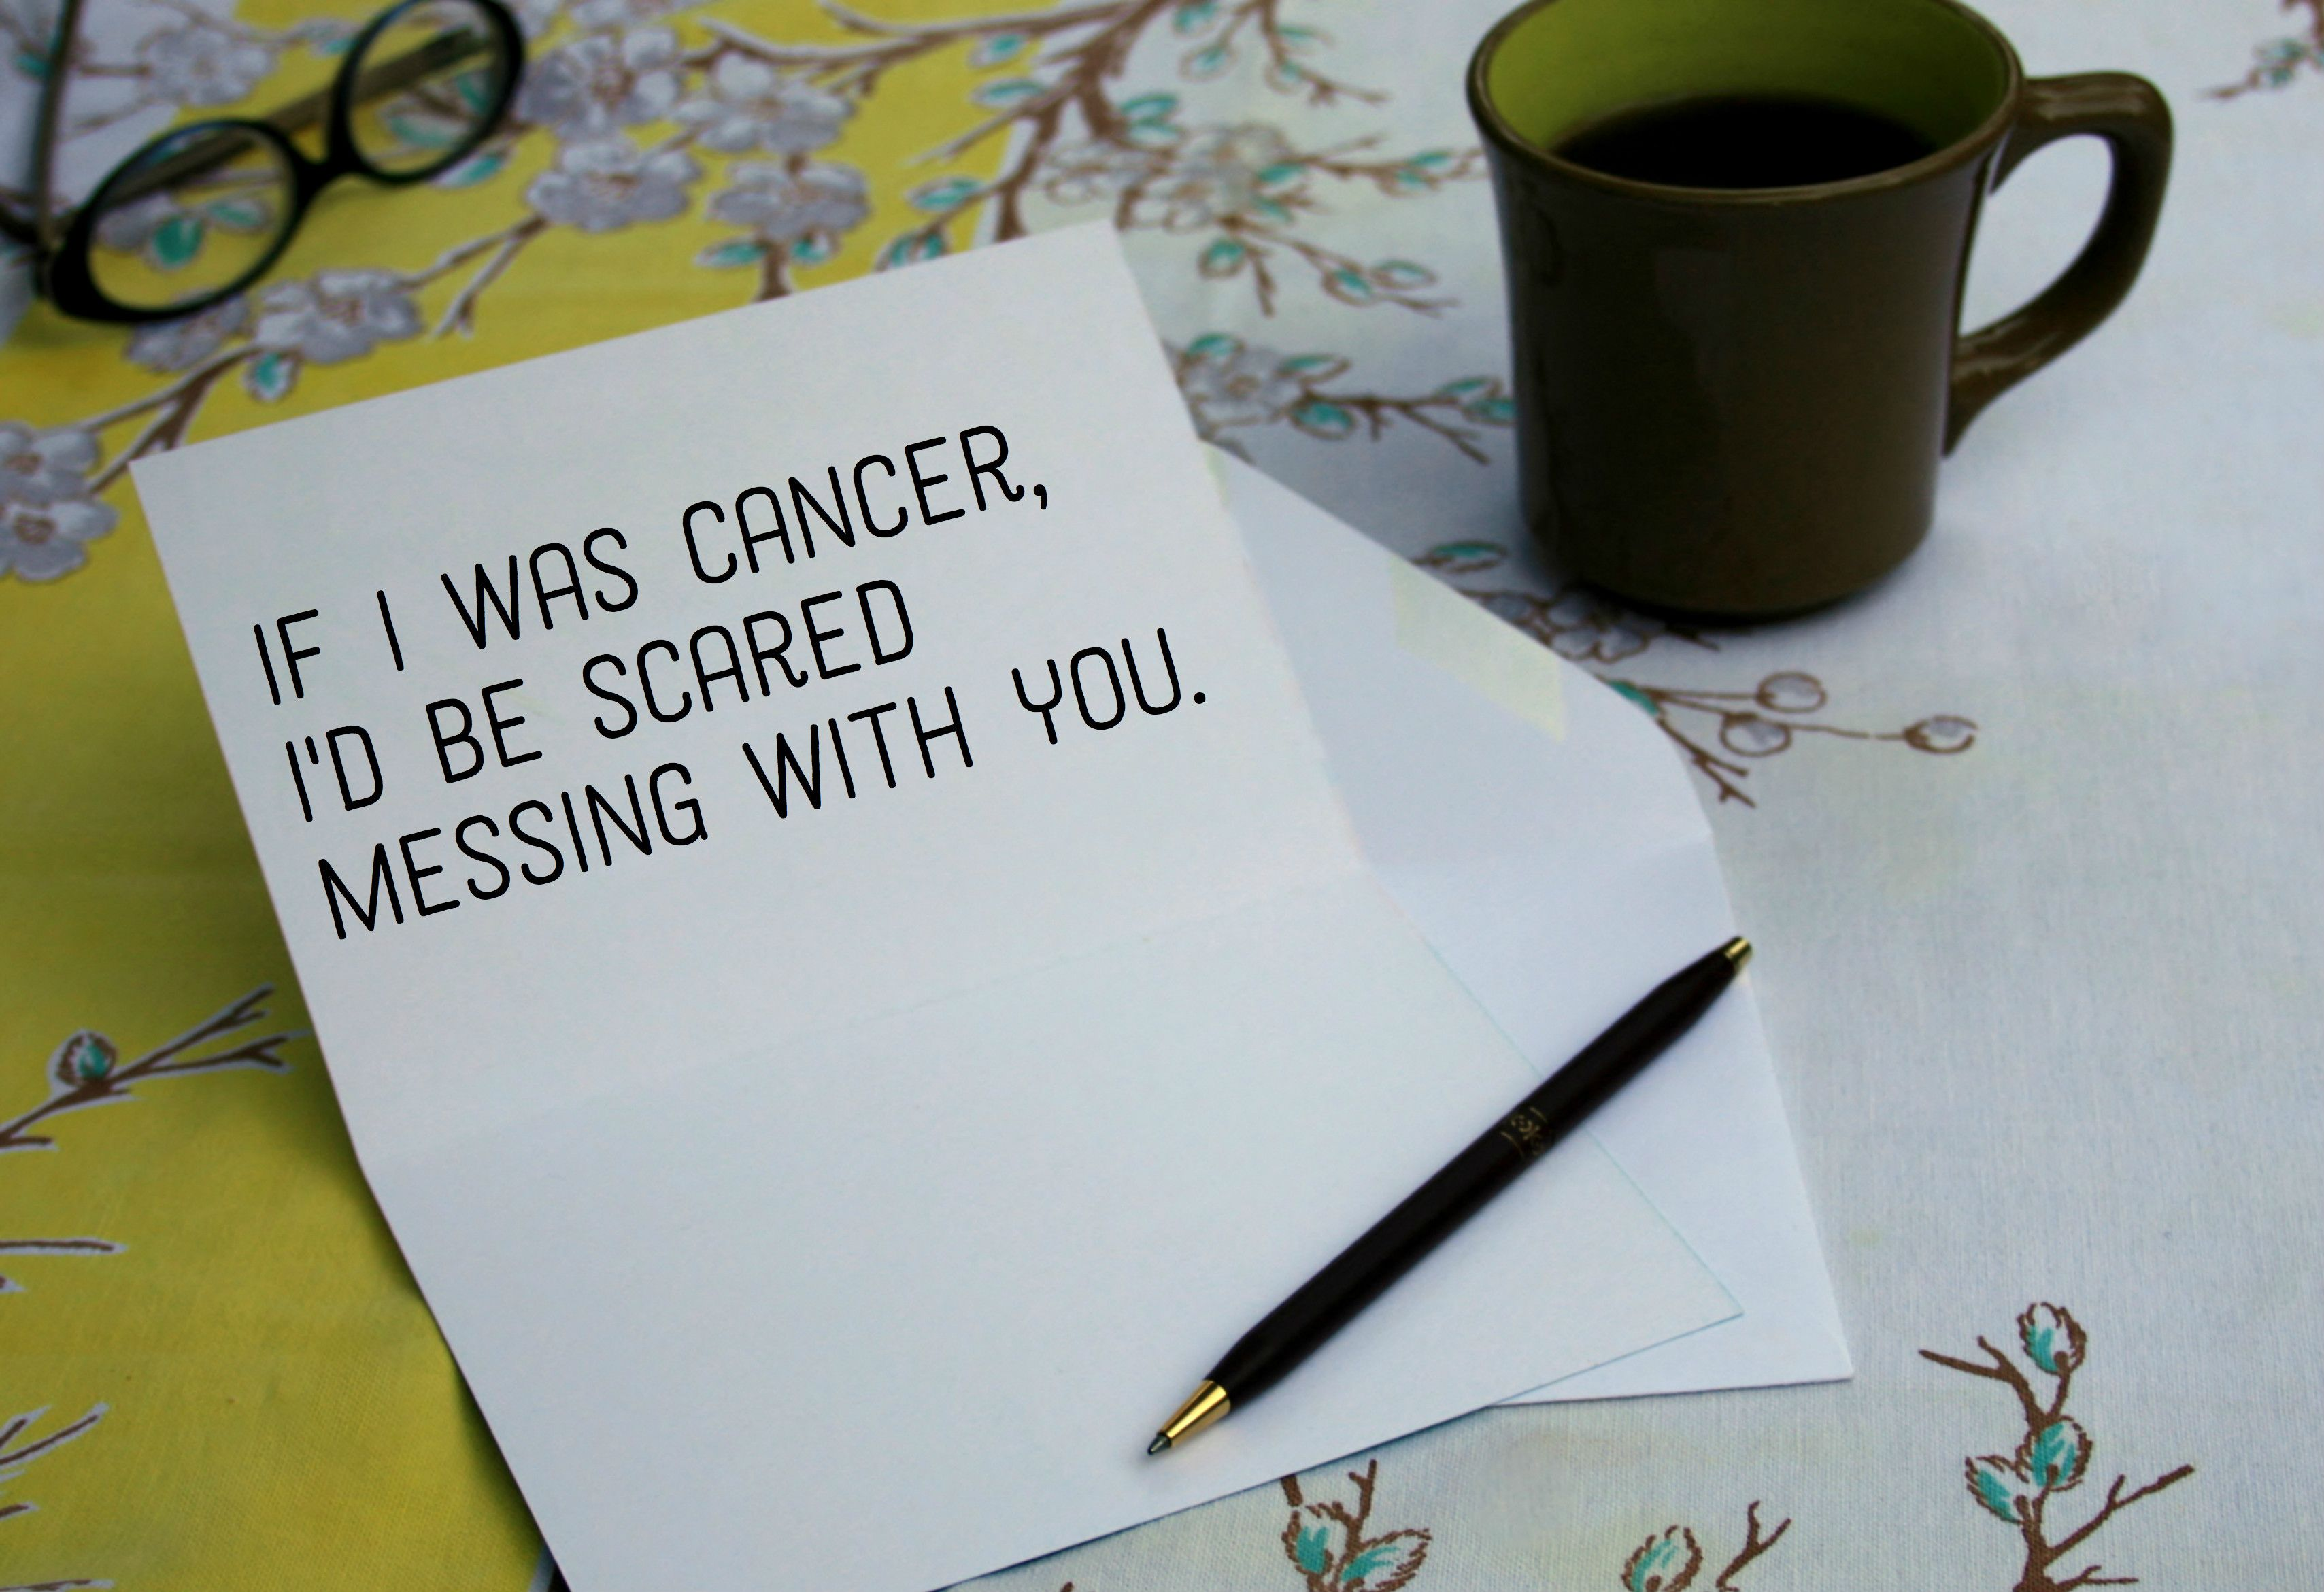 Get Well Wishes For Cancer What To Write In A Card Relationships